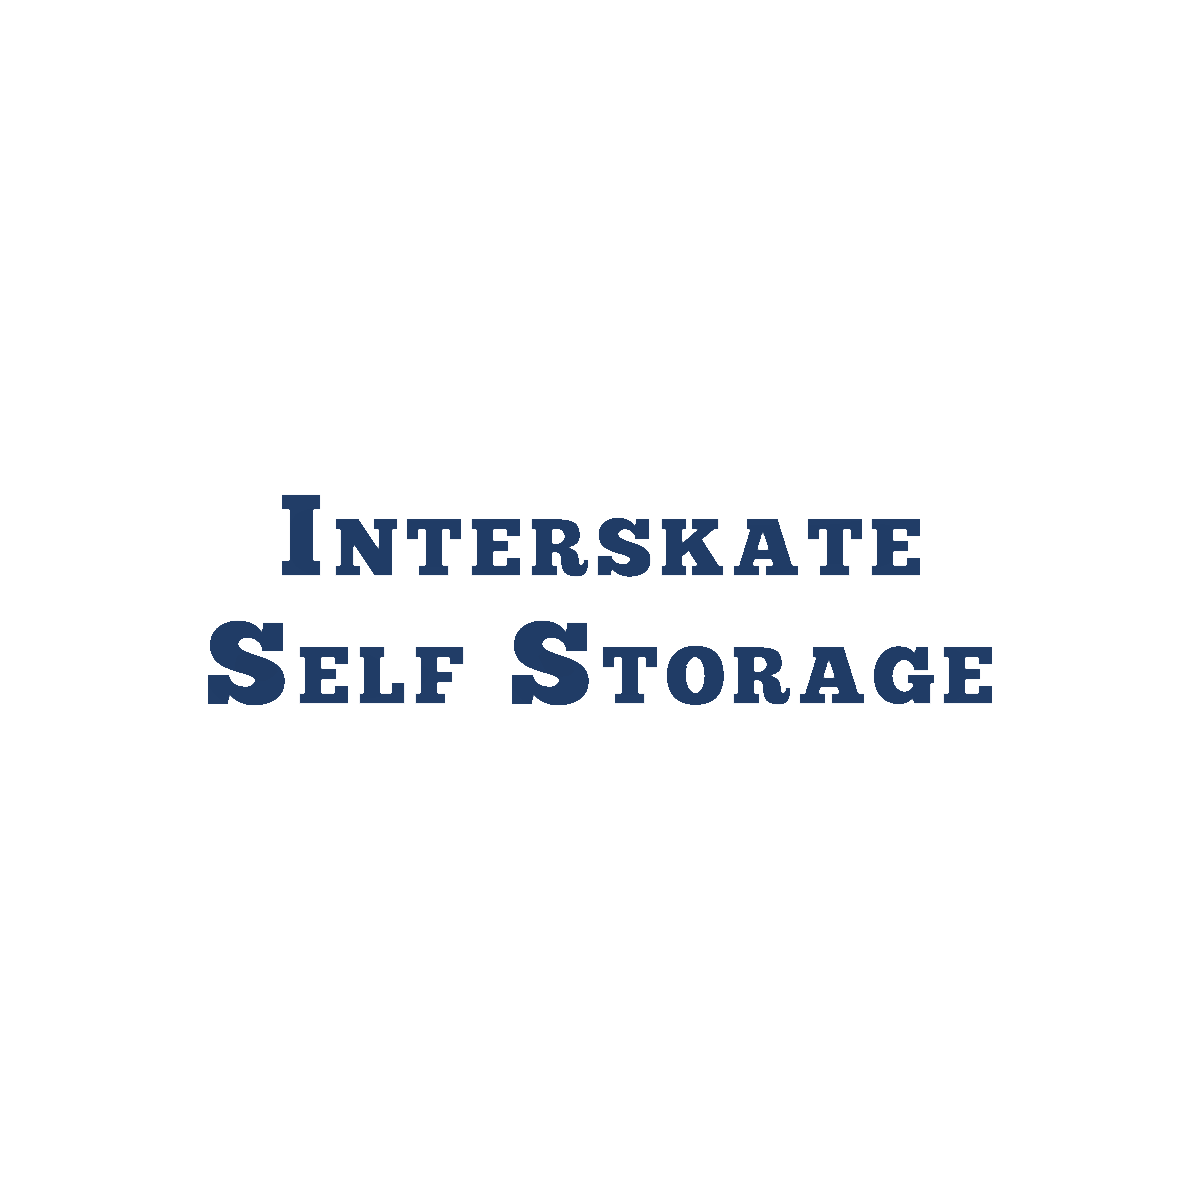 Interskate Self Storage